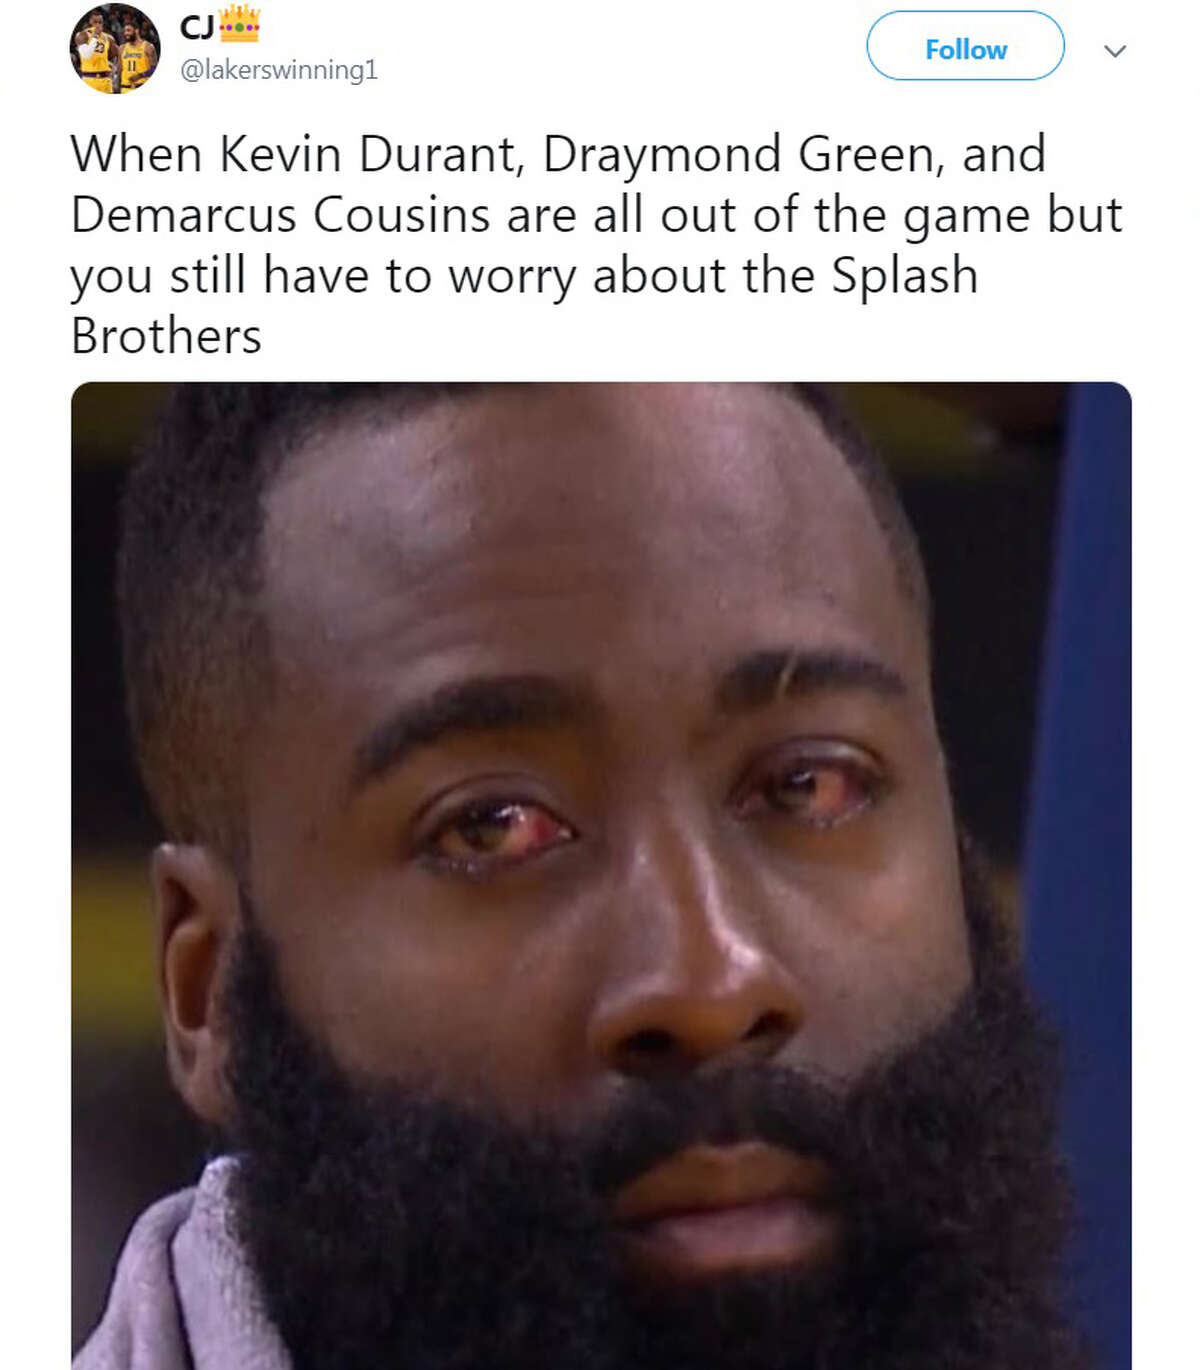 The Internet came alive when the Warriors Kevin Durant went down with a non-contact injury during a game against the Rockets on Wednesday, May 9, 2019.